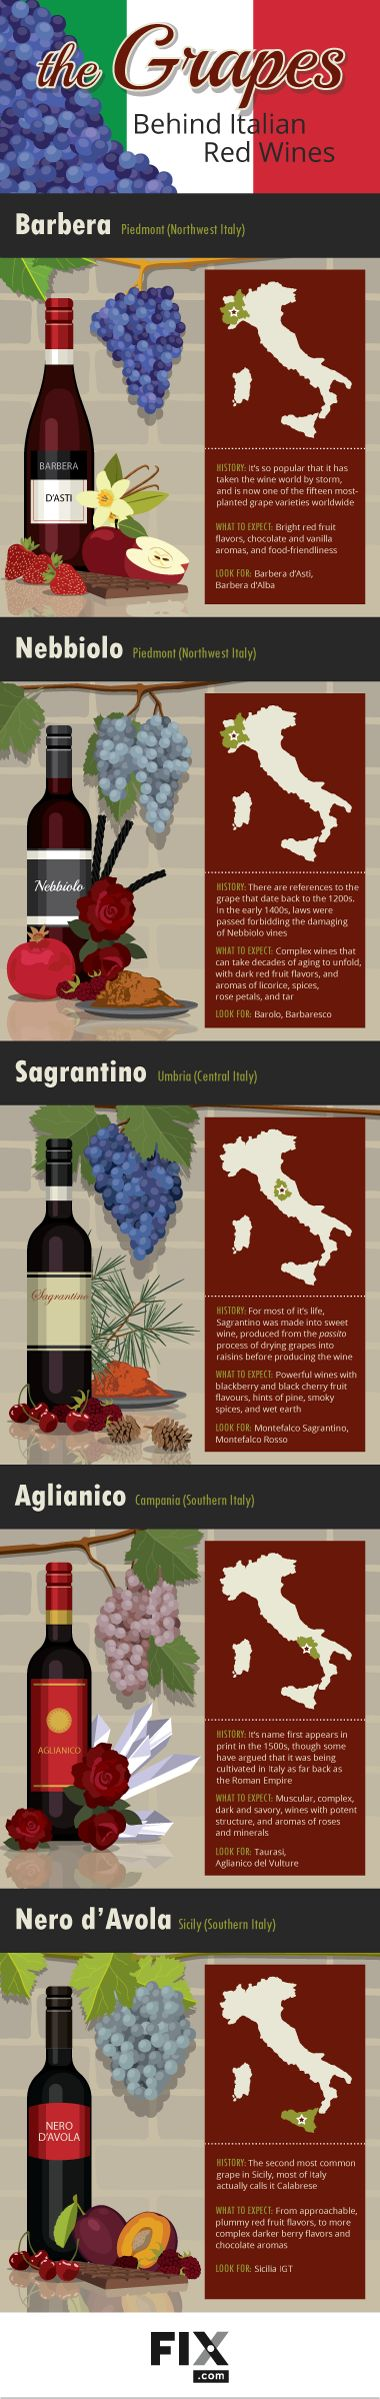 The Grapes Behind Italian Red Wines | #Wine #Wineeducation #Italy